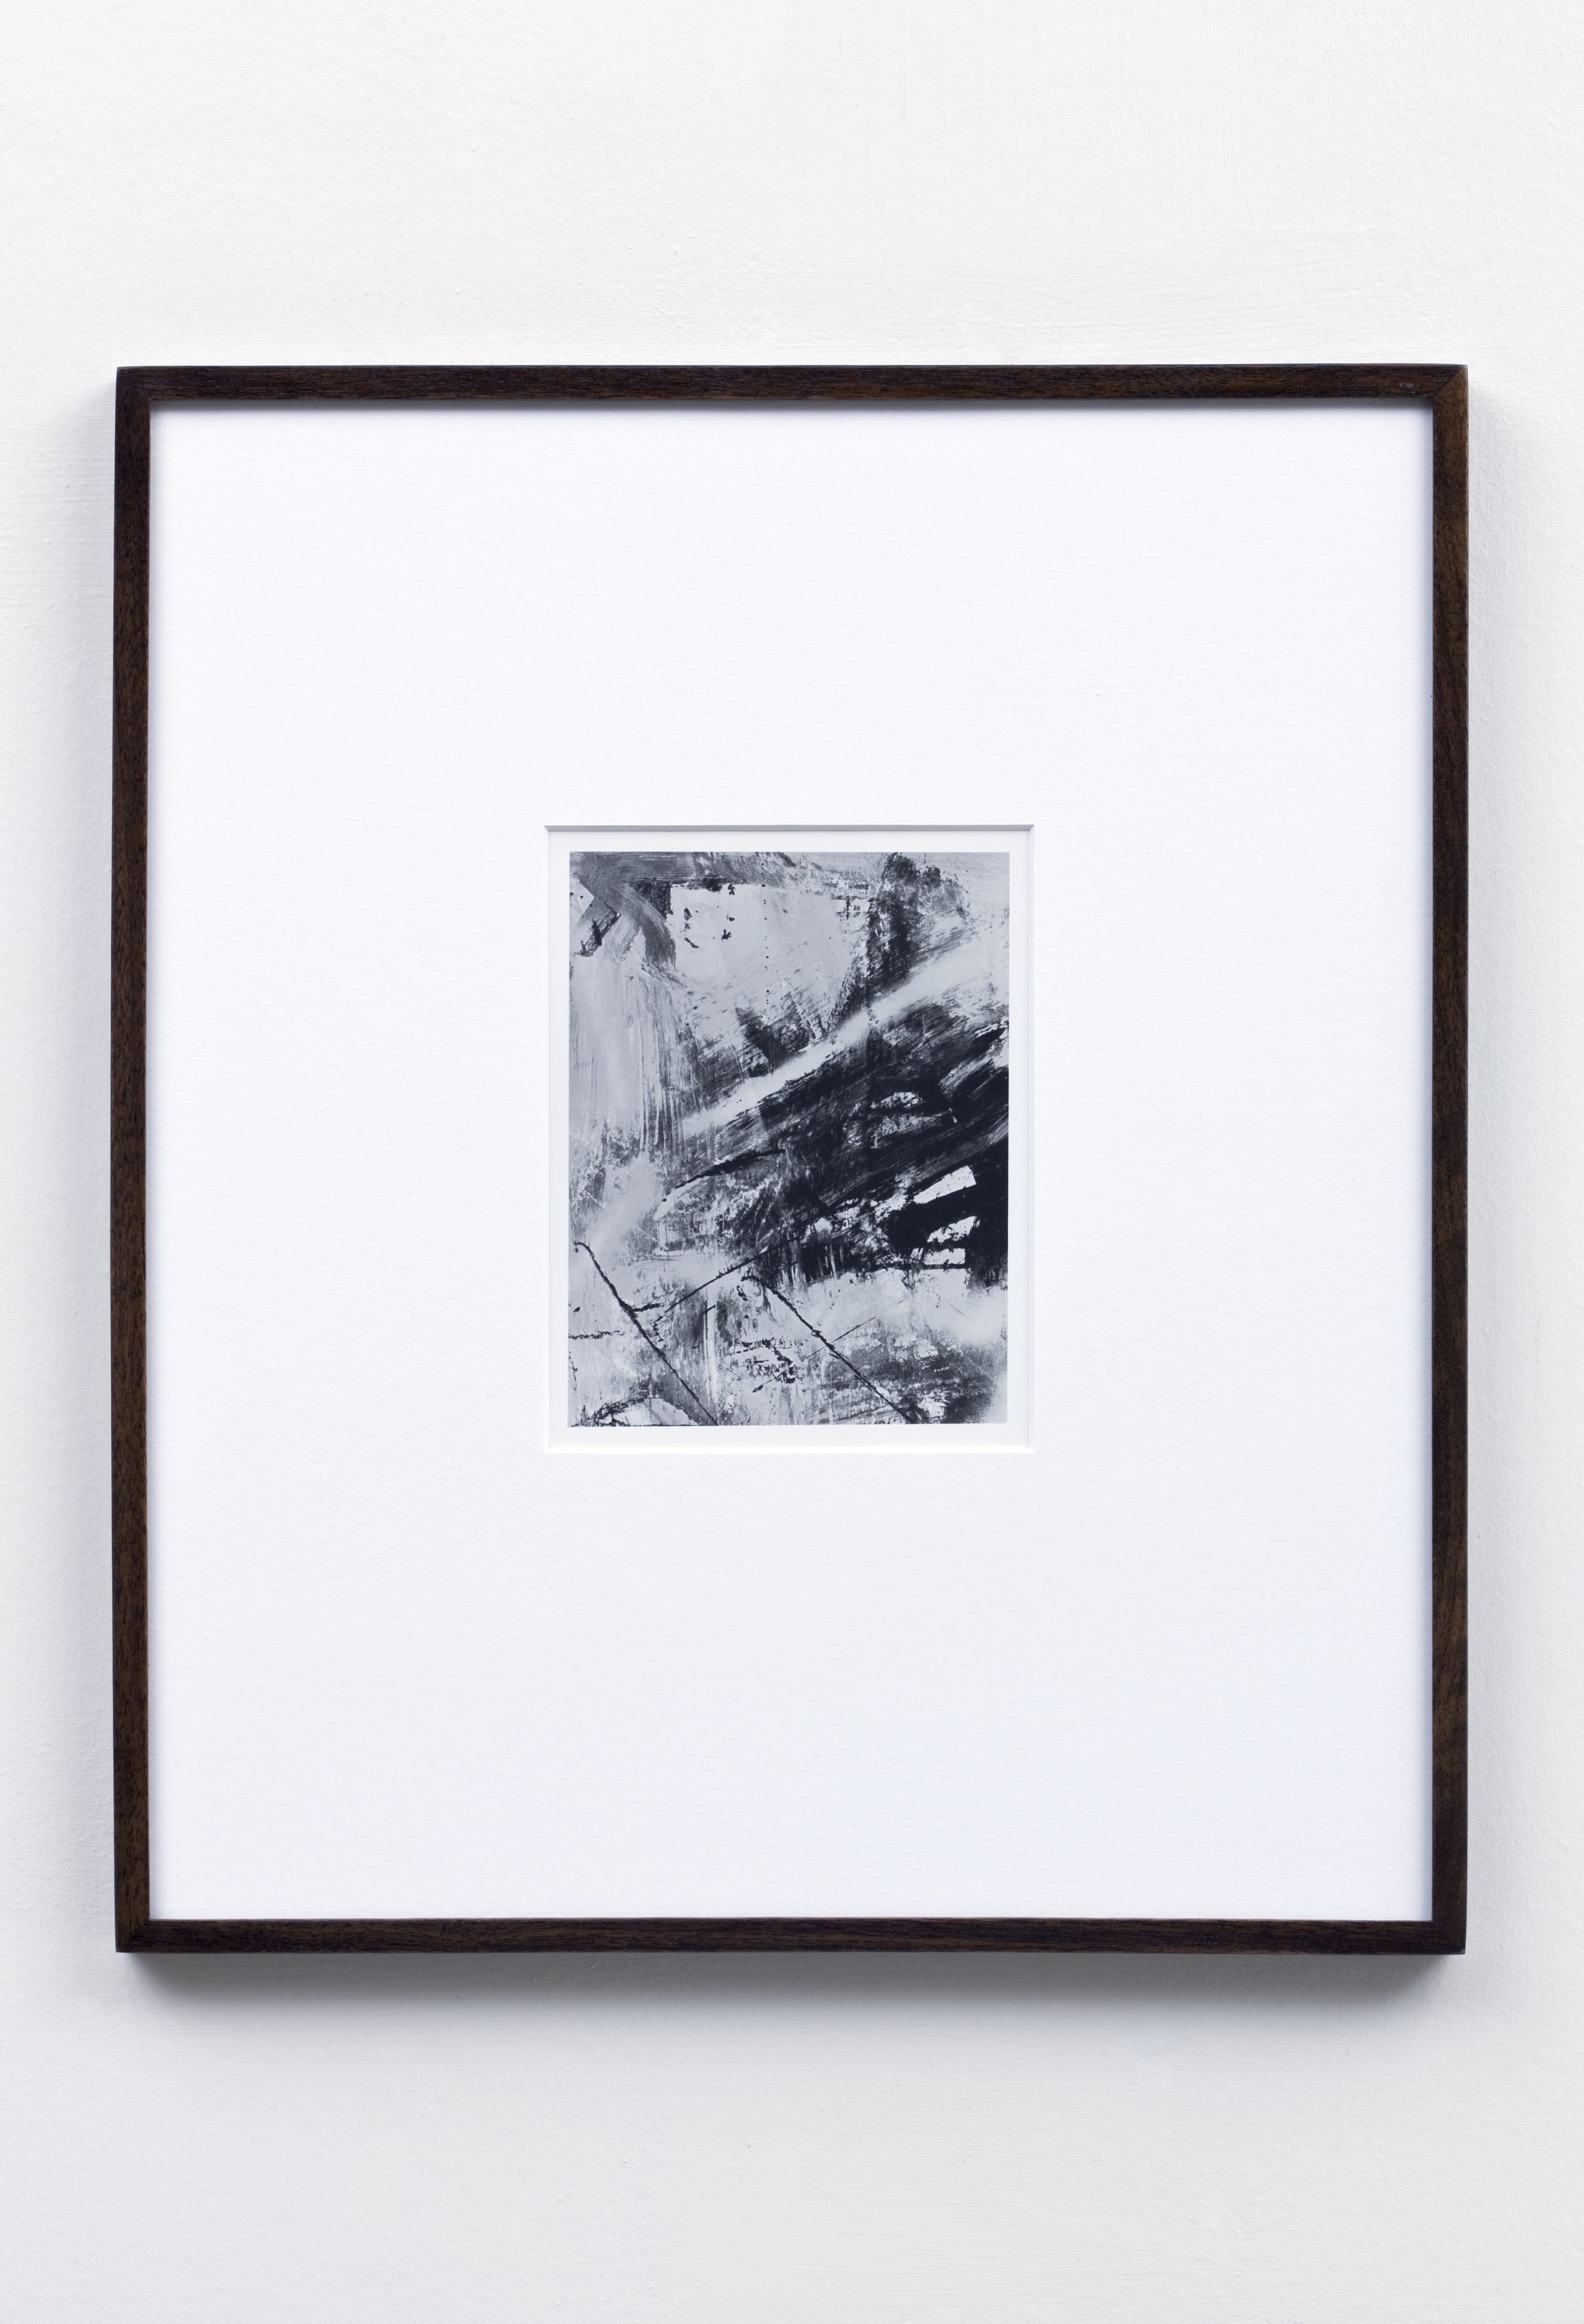 a black and white photograph by anthony pearson that's part of a larger installation